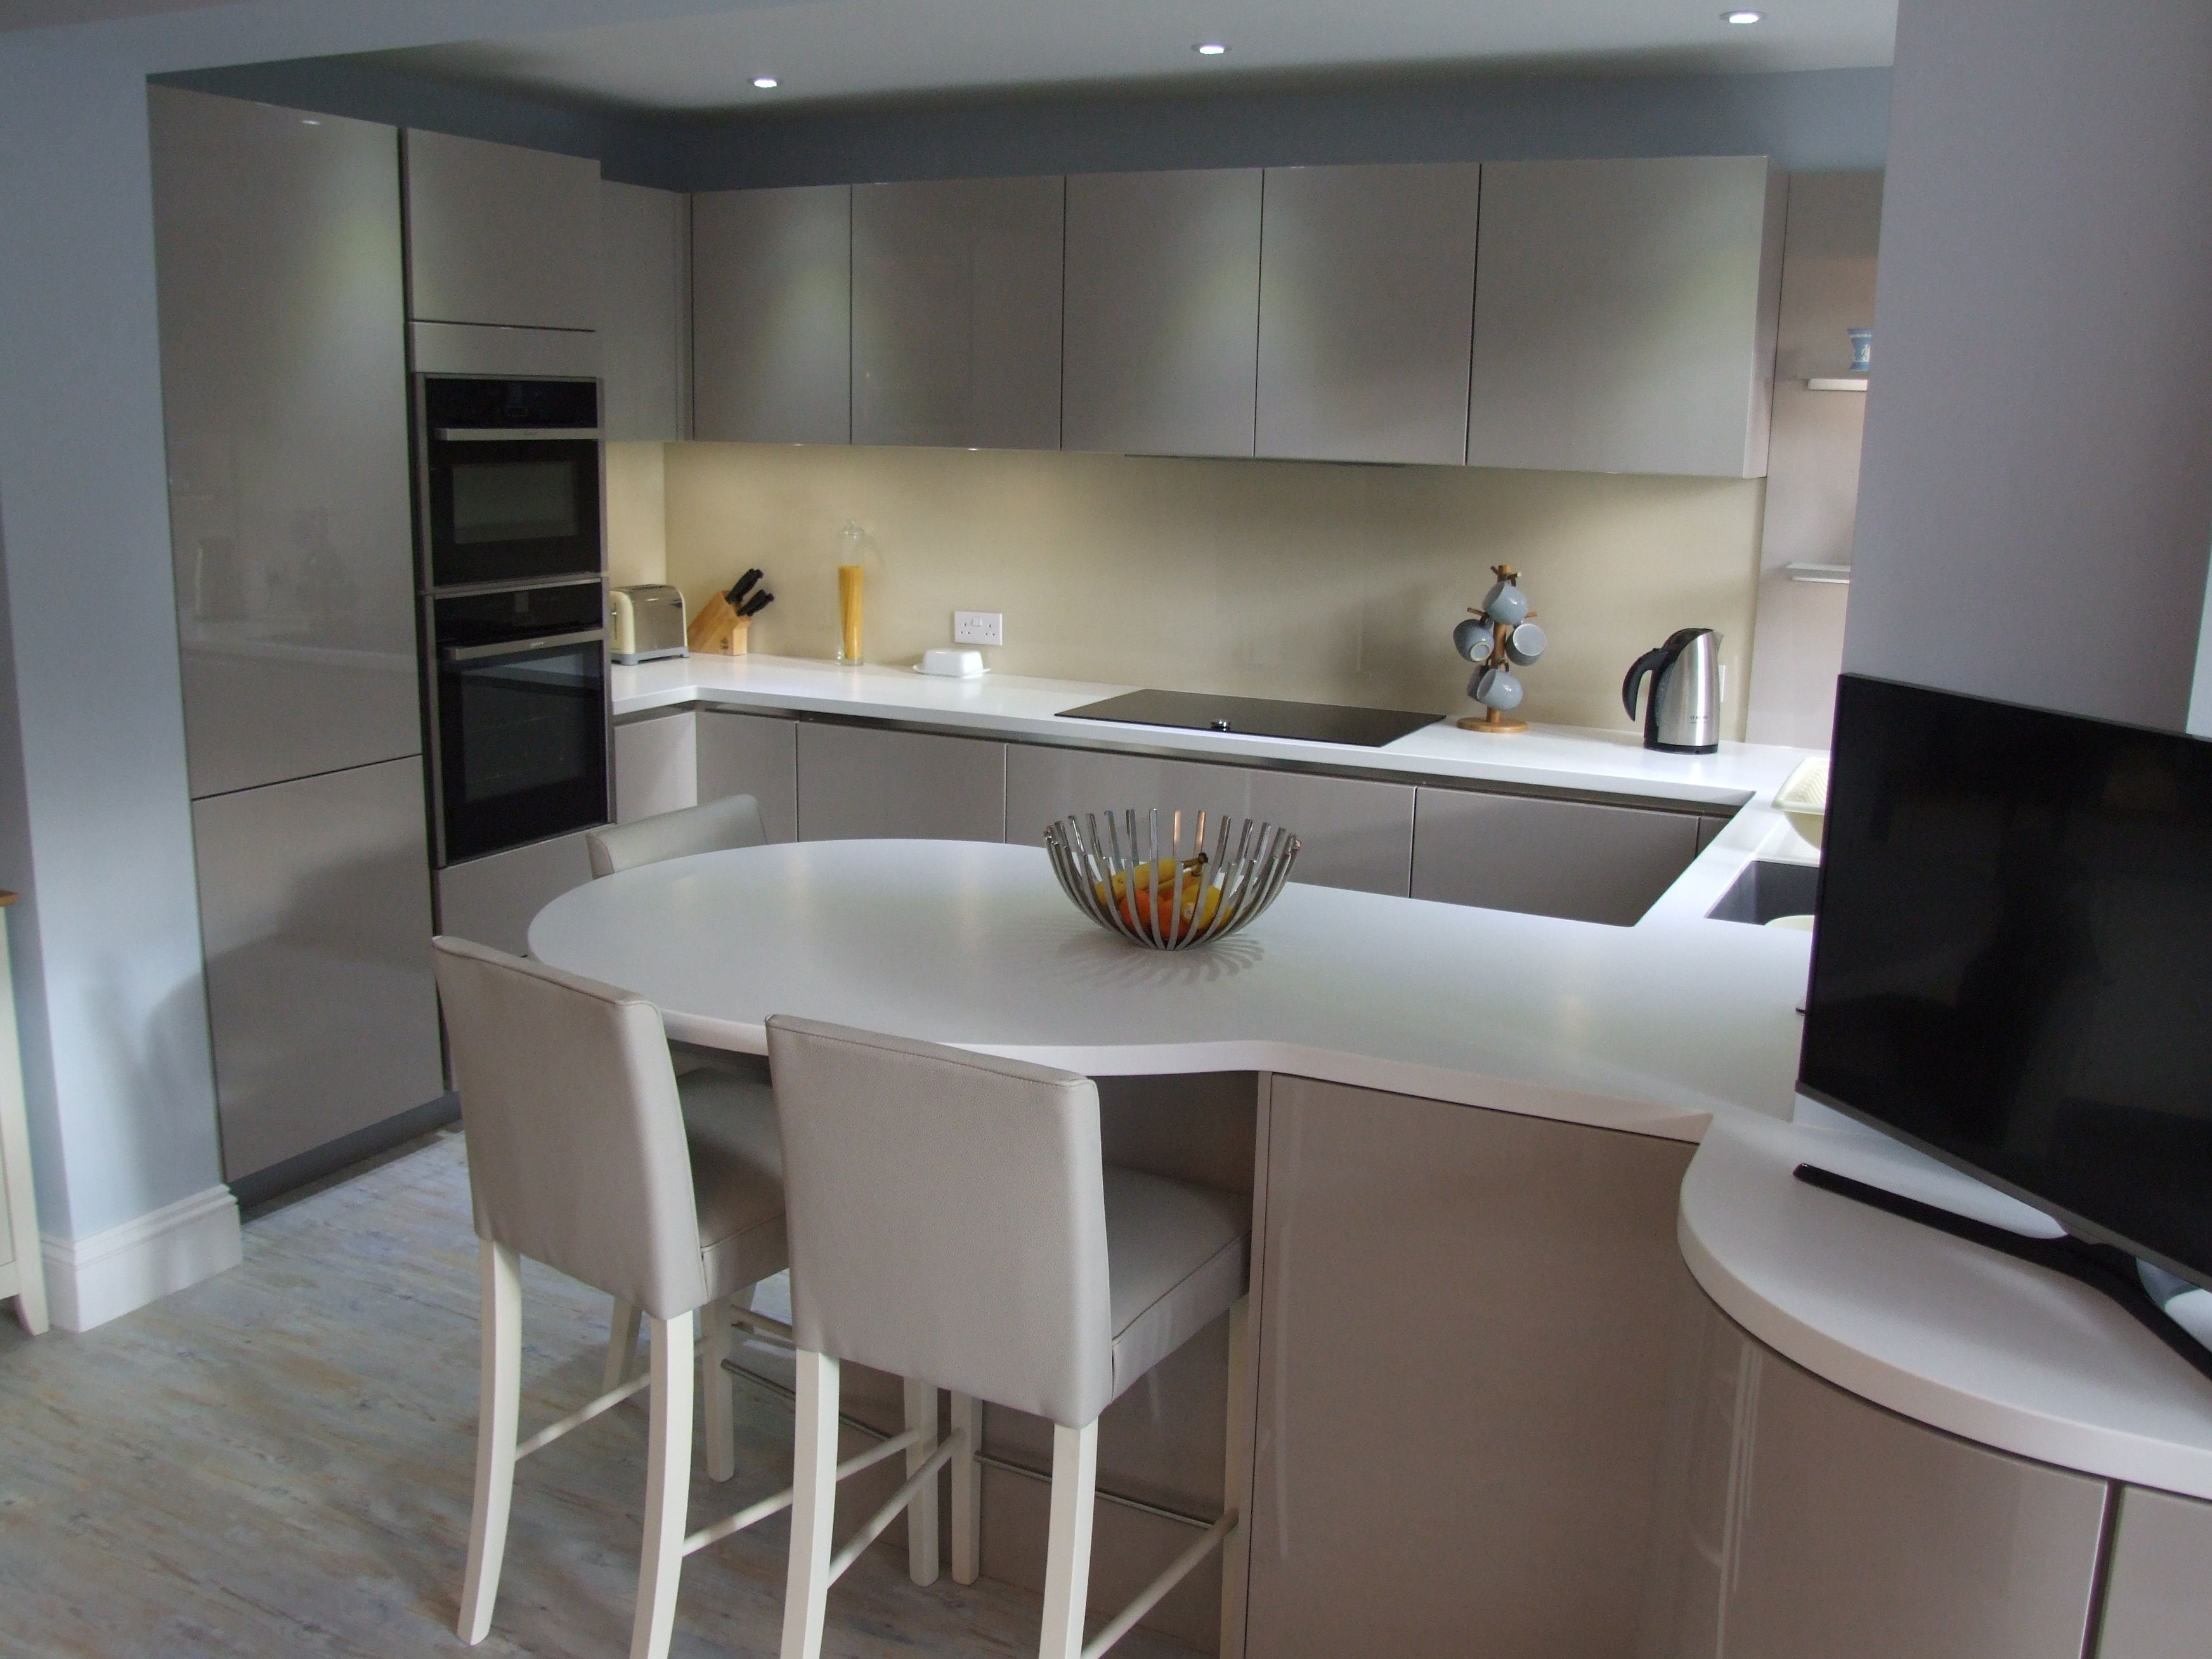 kitchen accessories design%0A This customer has chosen a neutral seaside theme to their kitchen design   With high gloss